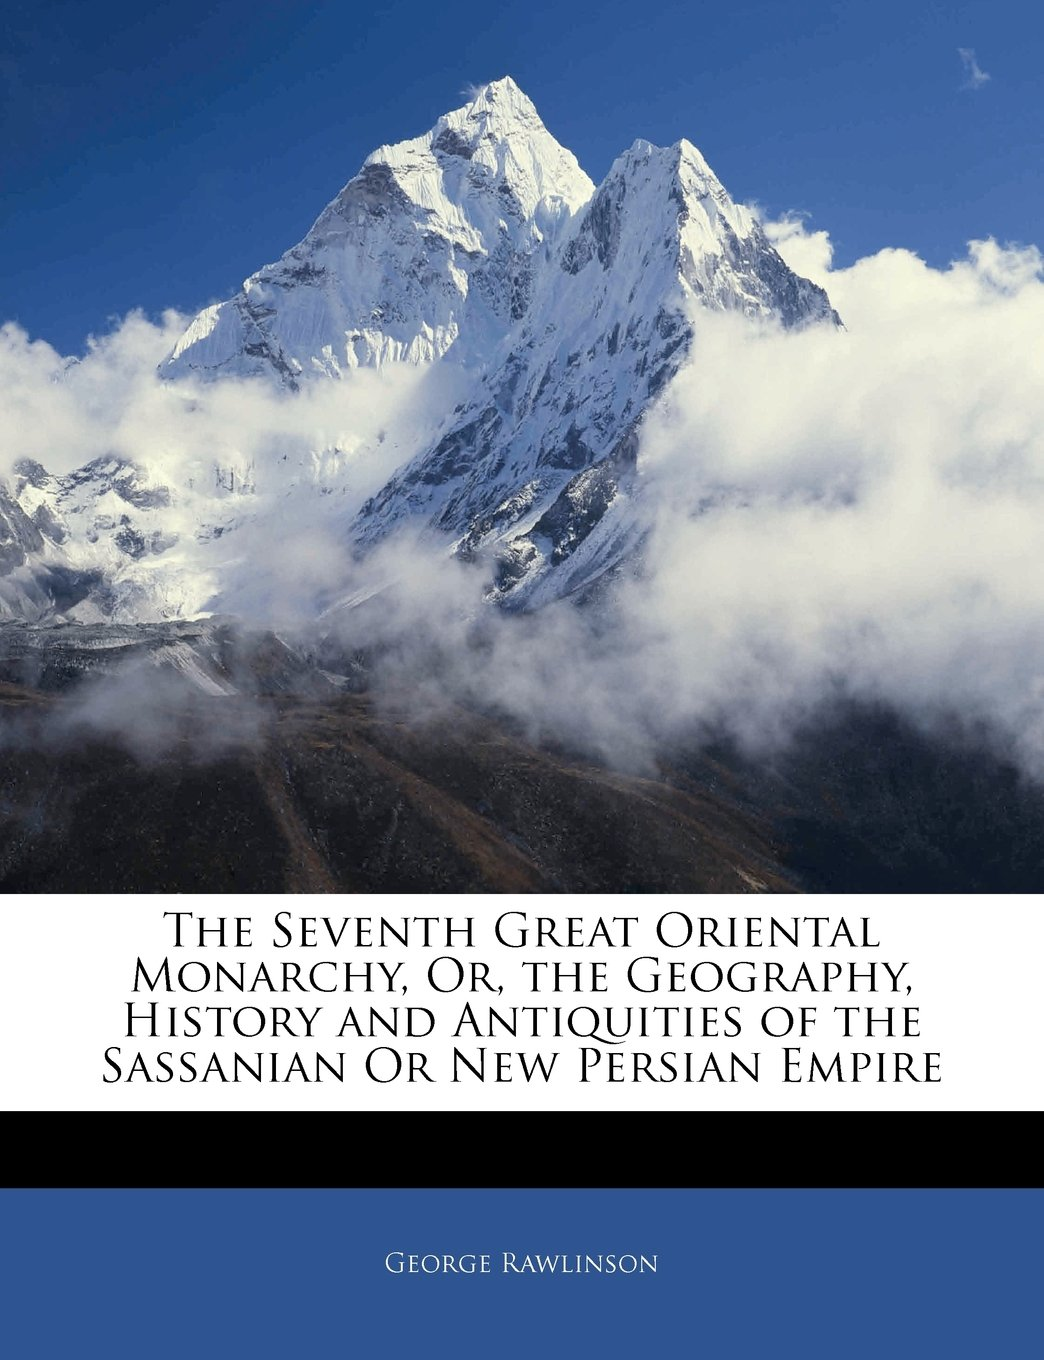 The Seventh Great Oriental Monarchy, Or, the Geography, History and Antiquities of the Sassanian Or New Persian Empire PDF